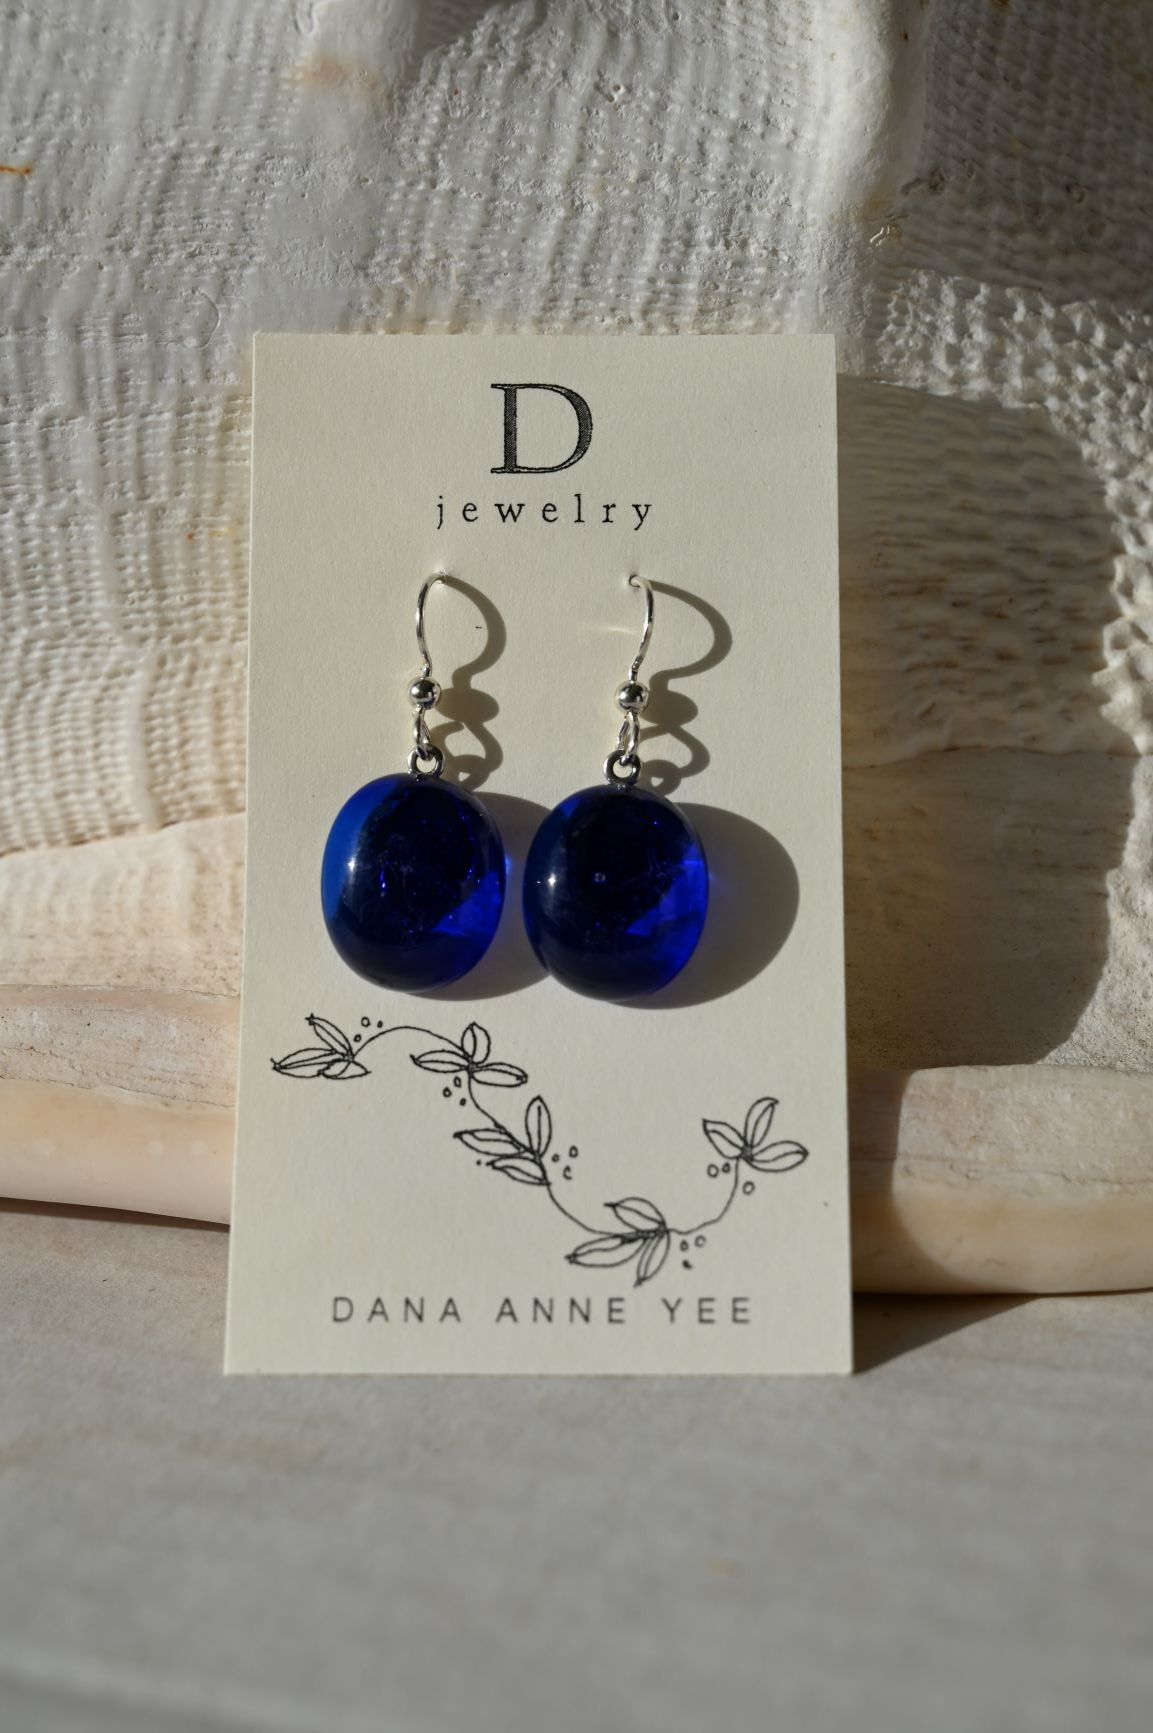 DAY-108 - Royal Blue Oval Glass, Sterling Silver, Earrings